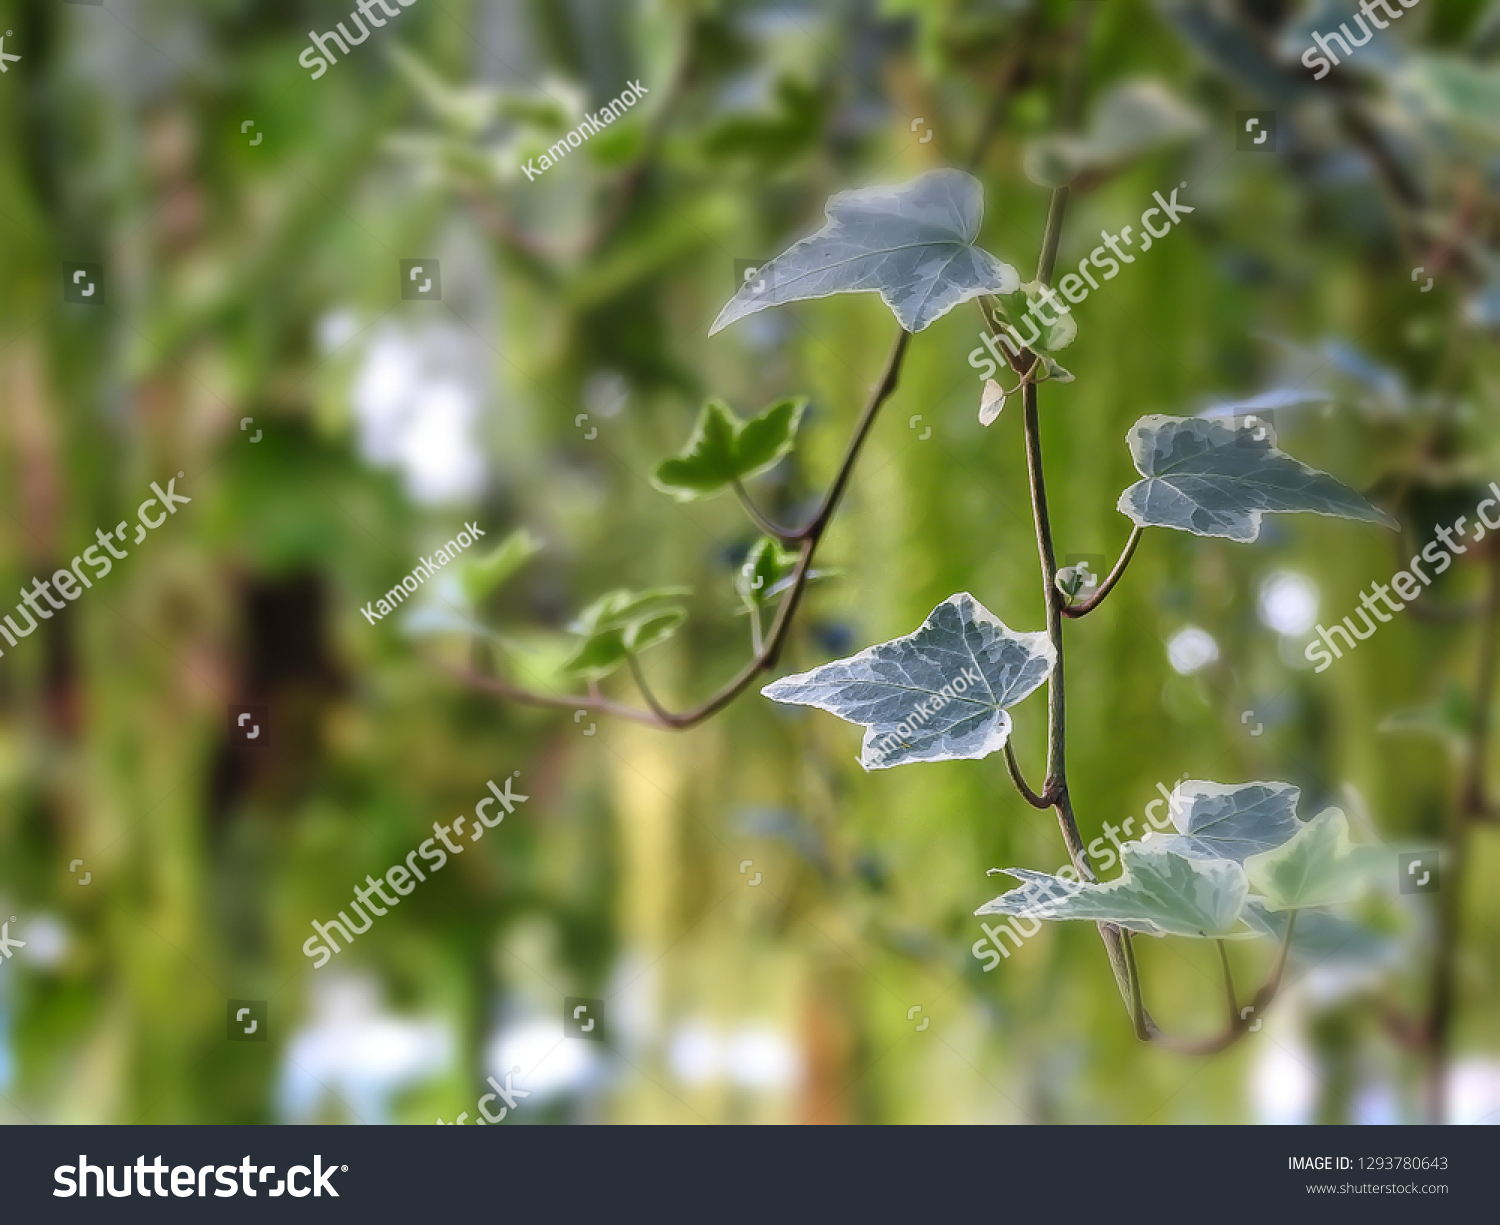 Green Ivy Vine On Blurred Green Stock Photo Edit Now 1293780643